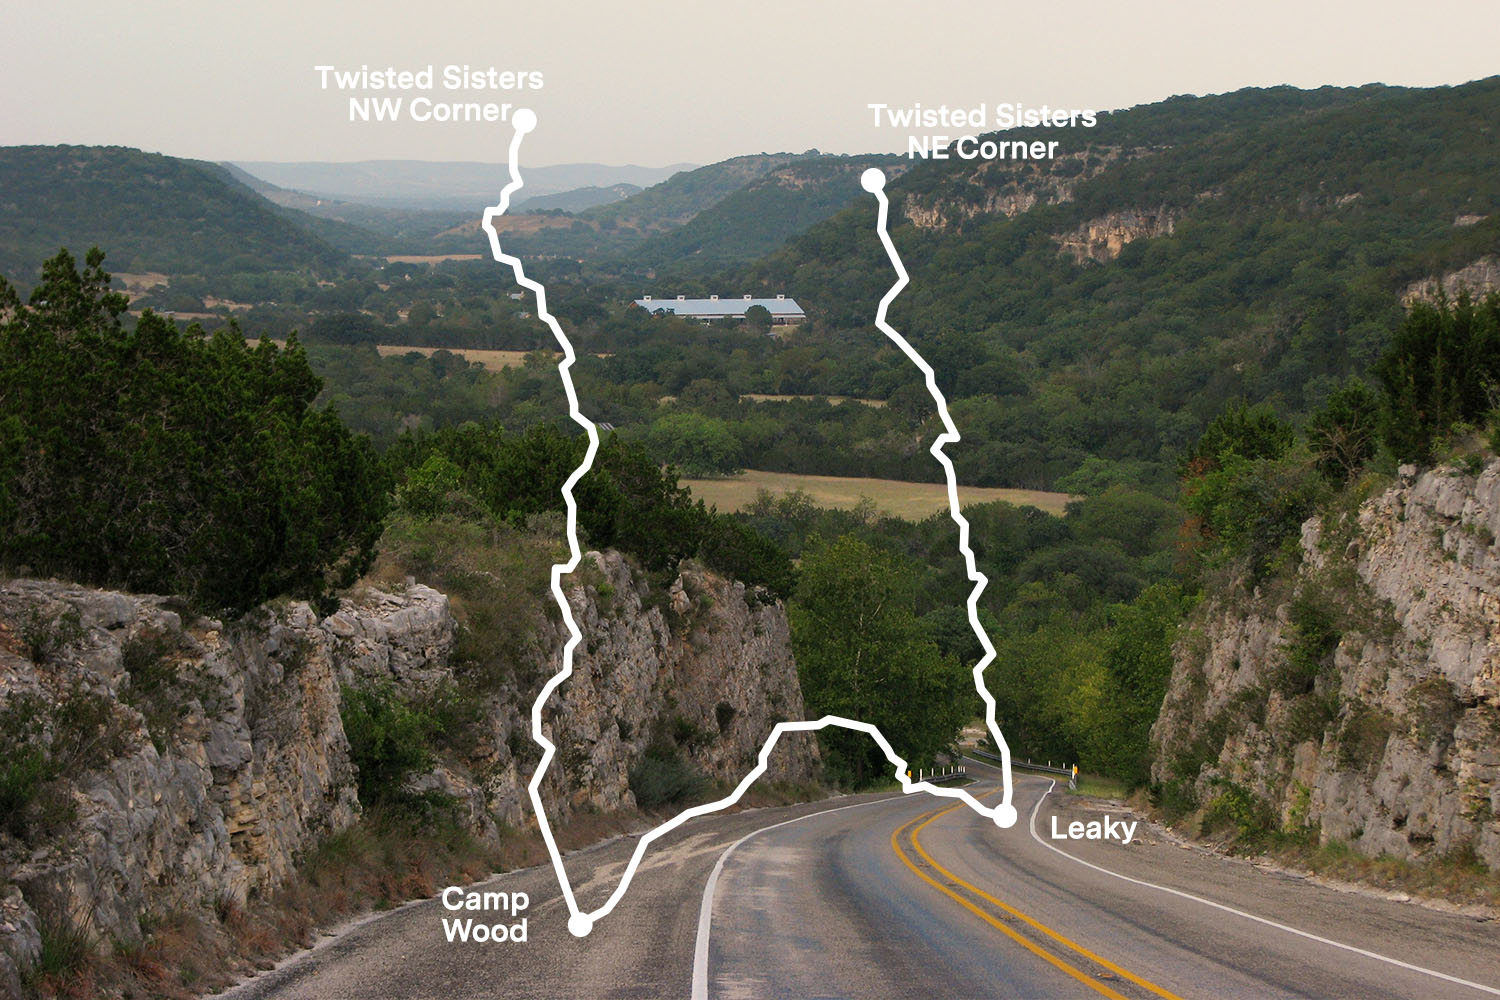 The Best Scenic Drive in Texas are the Three Twisted Sisters, or Hill Country Ranch Roads 335, 336 and 337